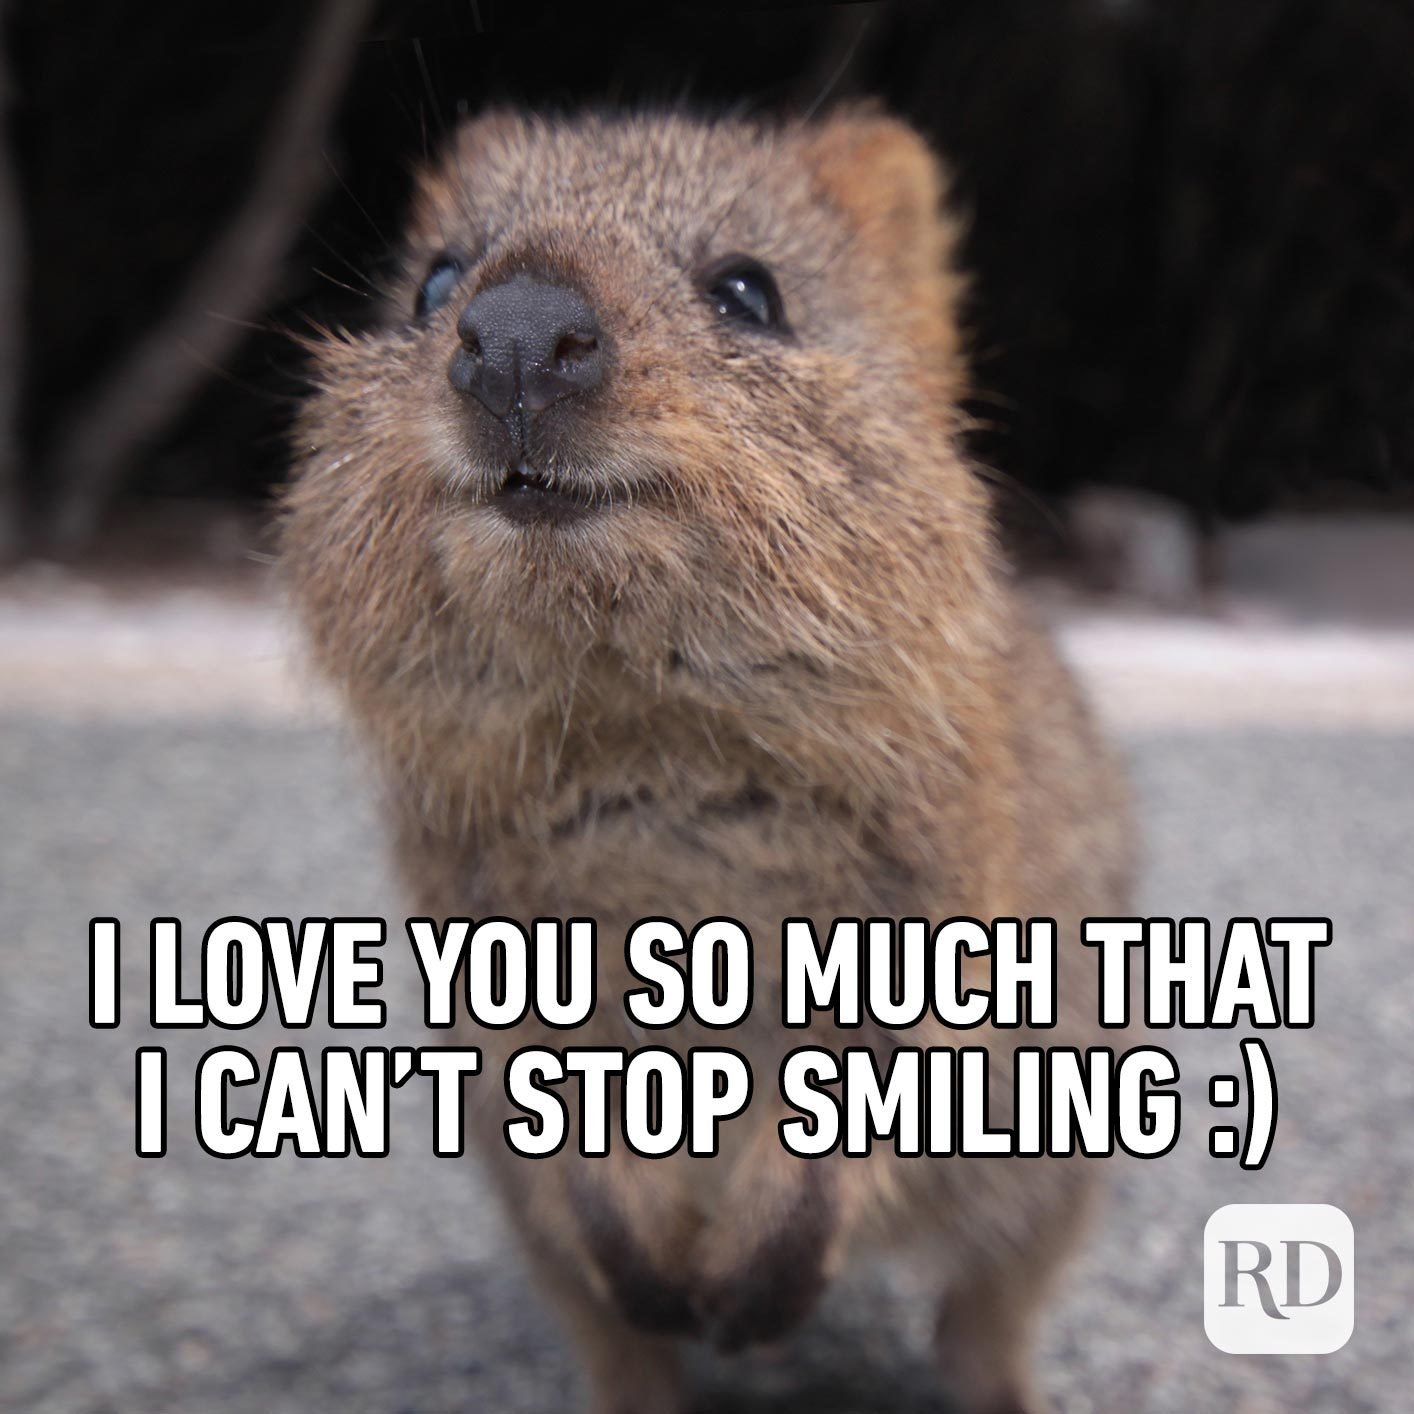 Happy rodent. Meme text: I love you so much that I can't stop smiling :)